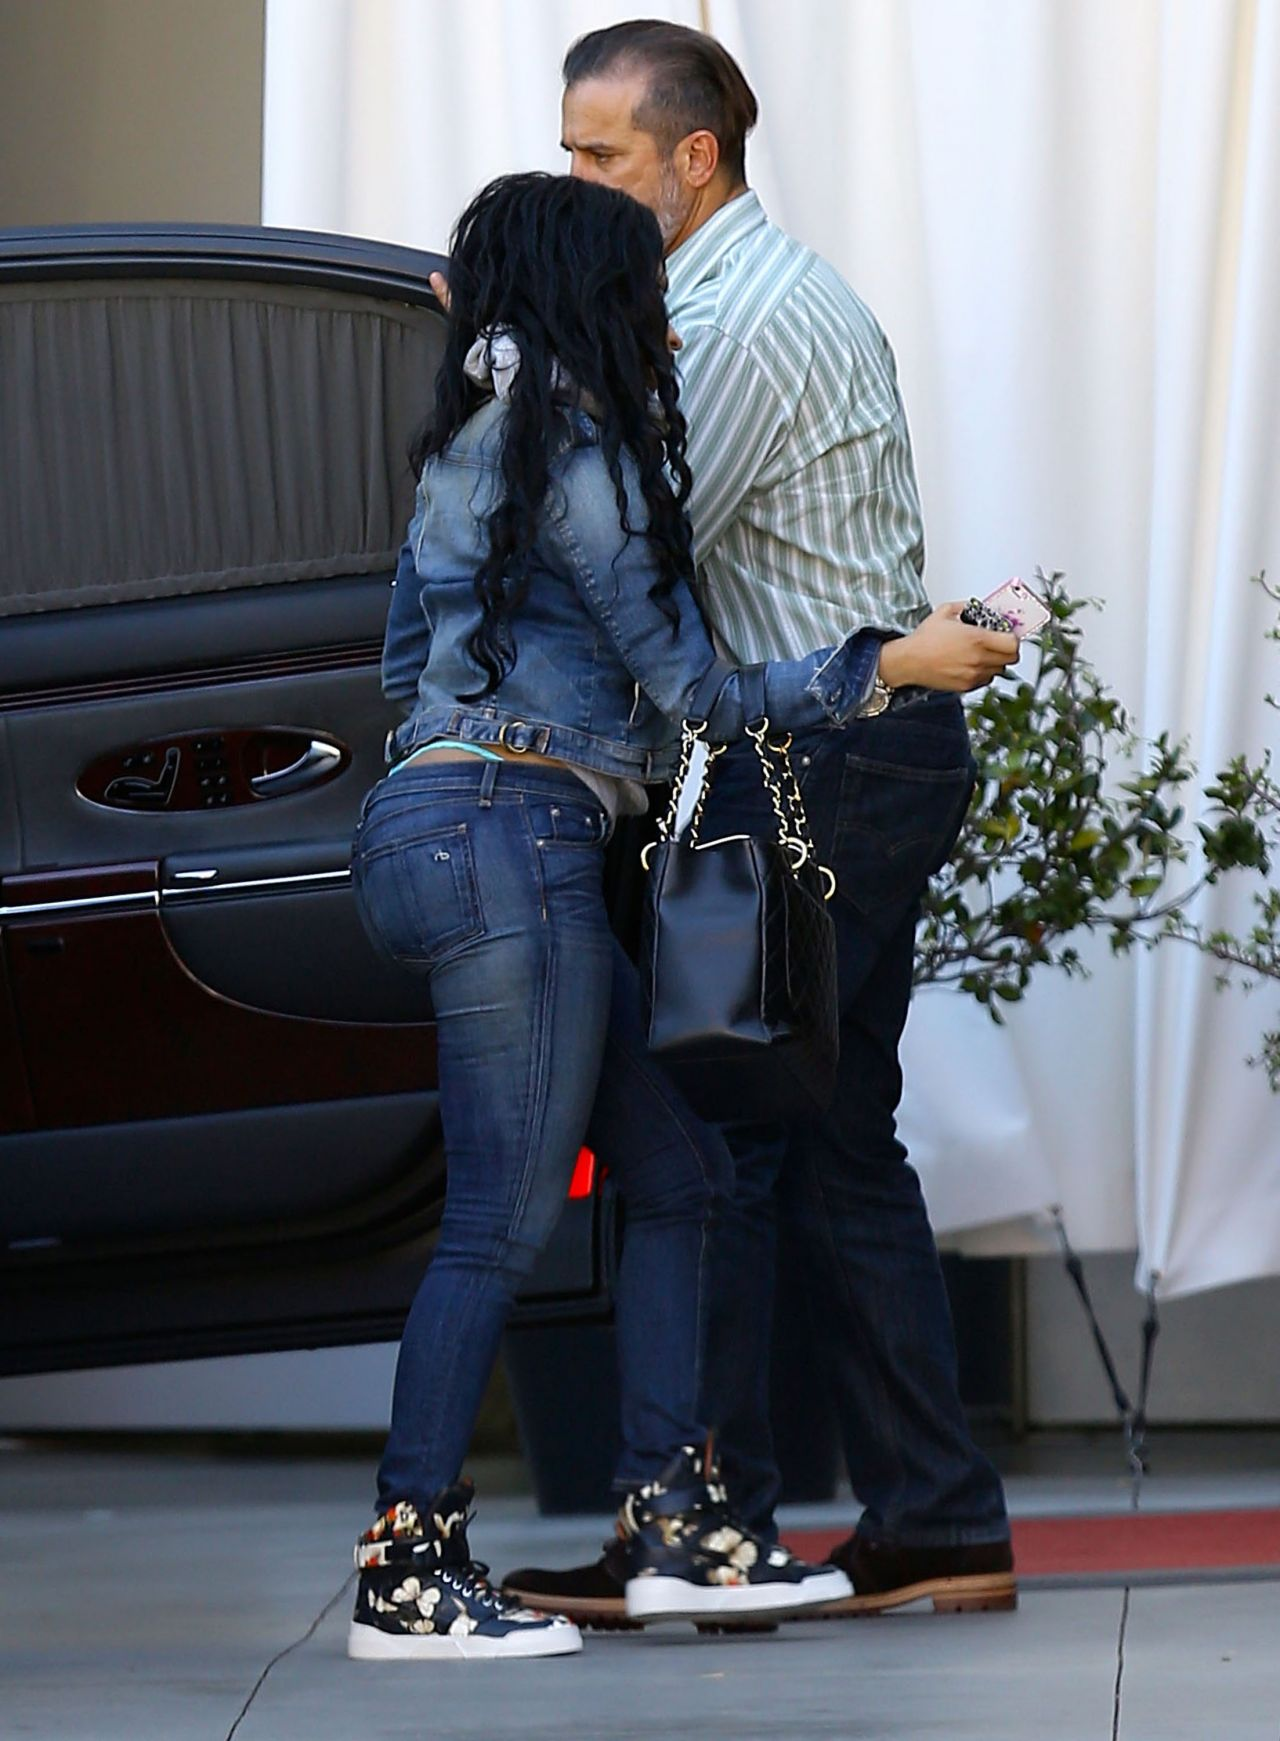 Nicki's butt in jeans makes you want to smack that ass!